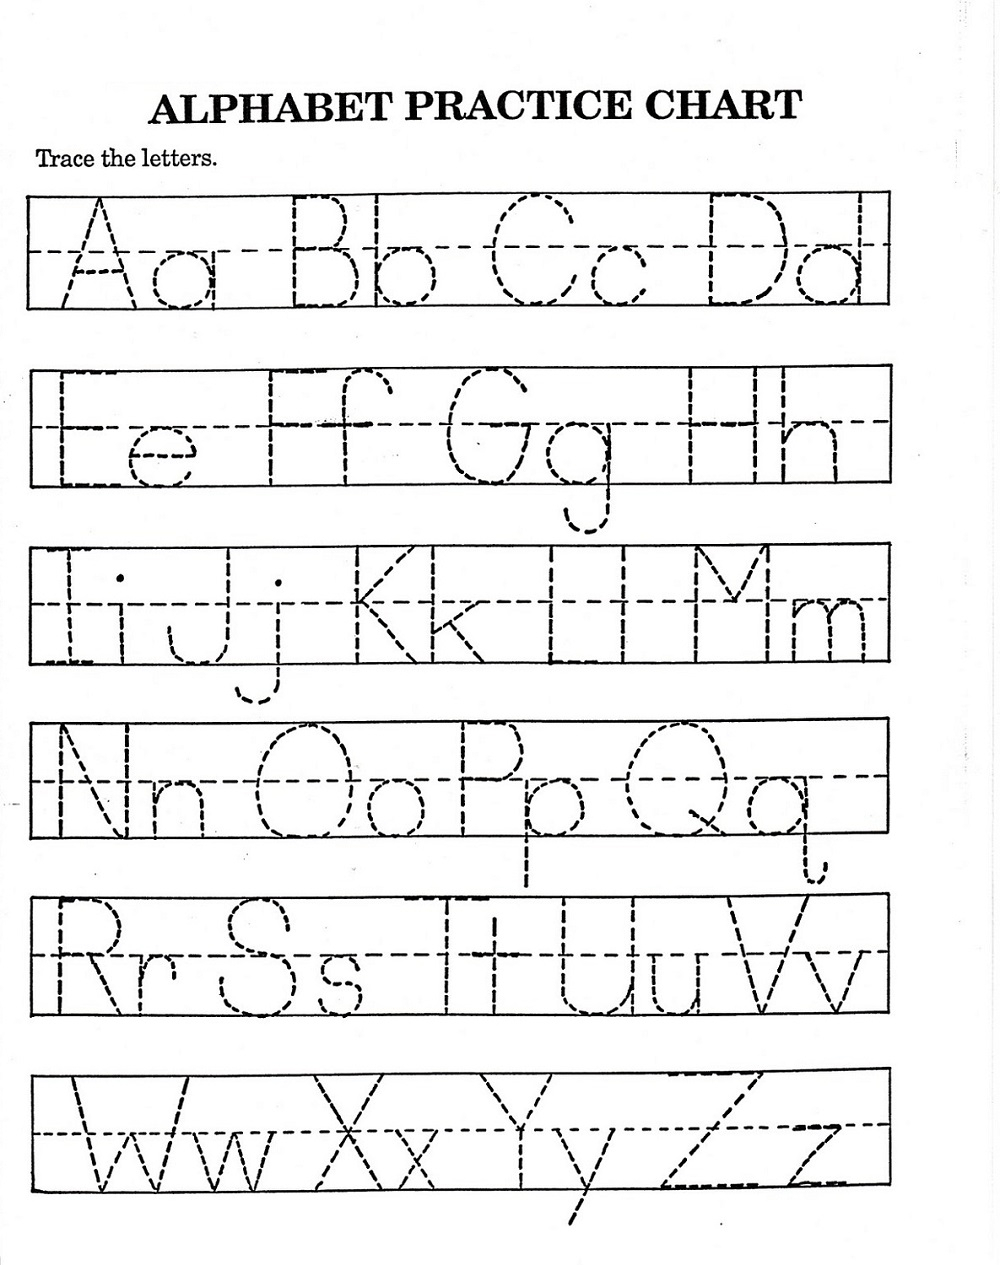 Traceable Alphabet Worksheets A-Z | Activity Shelter pertaining to Alphabet Worksheets A To Z Activity Pages